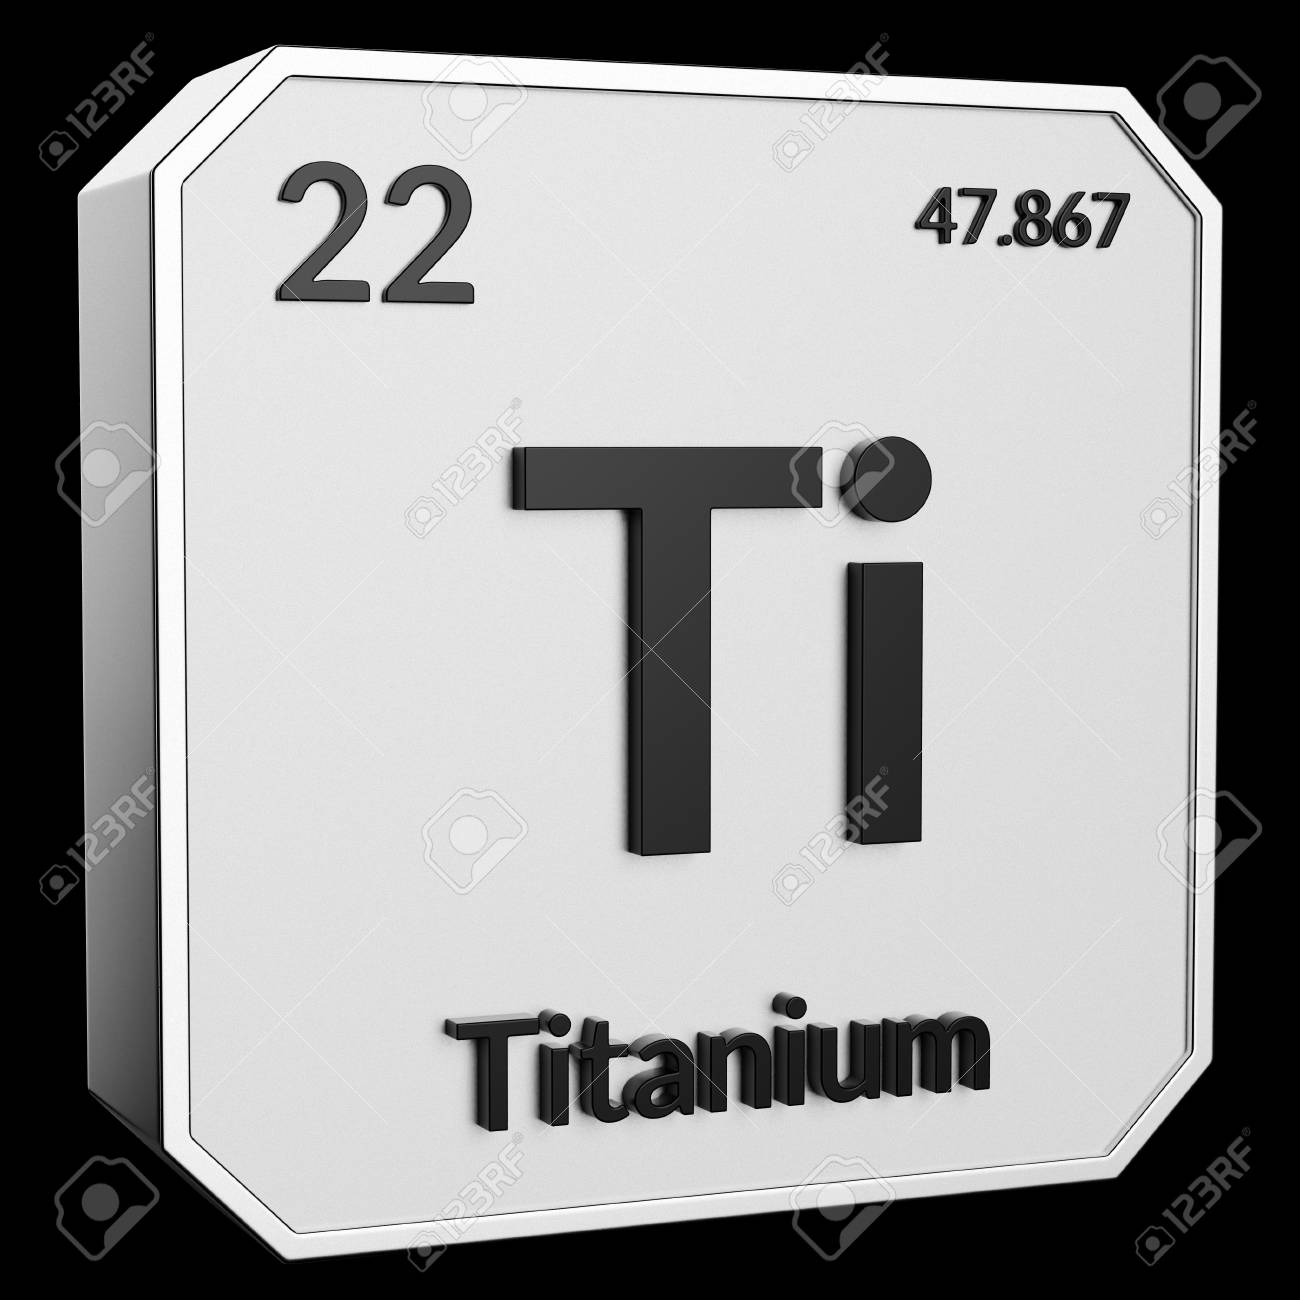 3d Text Of Chemical Element Titanium Its Atomic Weight Periodic